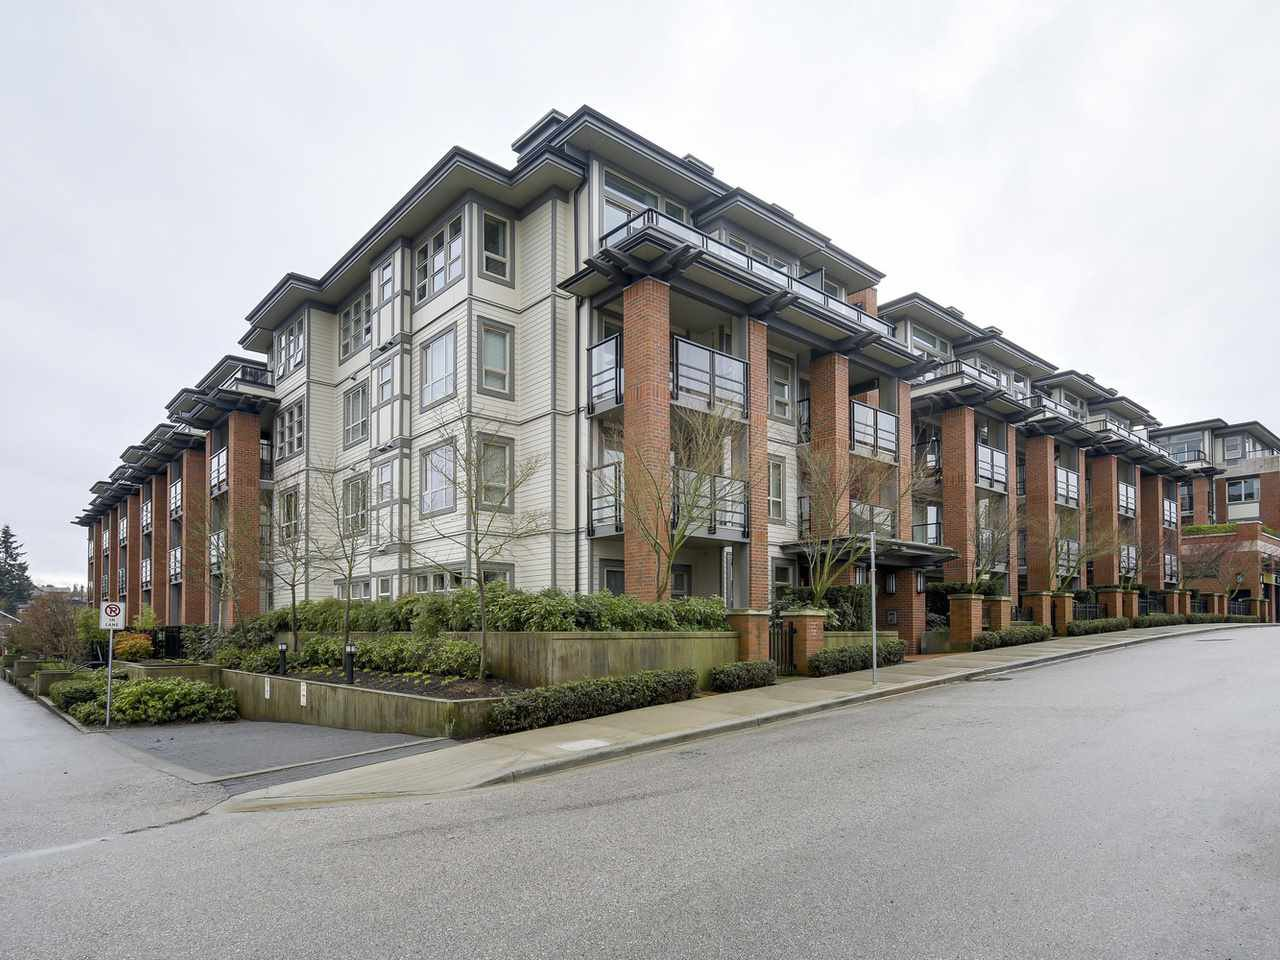 "Main Photo: 225 738 E 29TH Avenue in Vancouver: Fraser VE Condo for sale in ""CENTURY"" (Vancouver East)  : MLS®# R2146306"